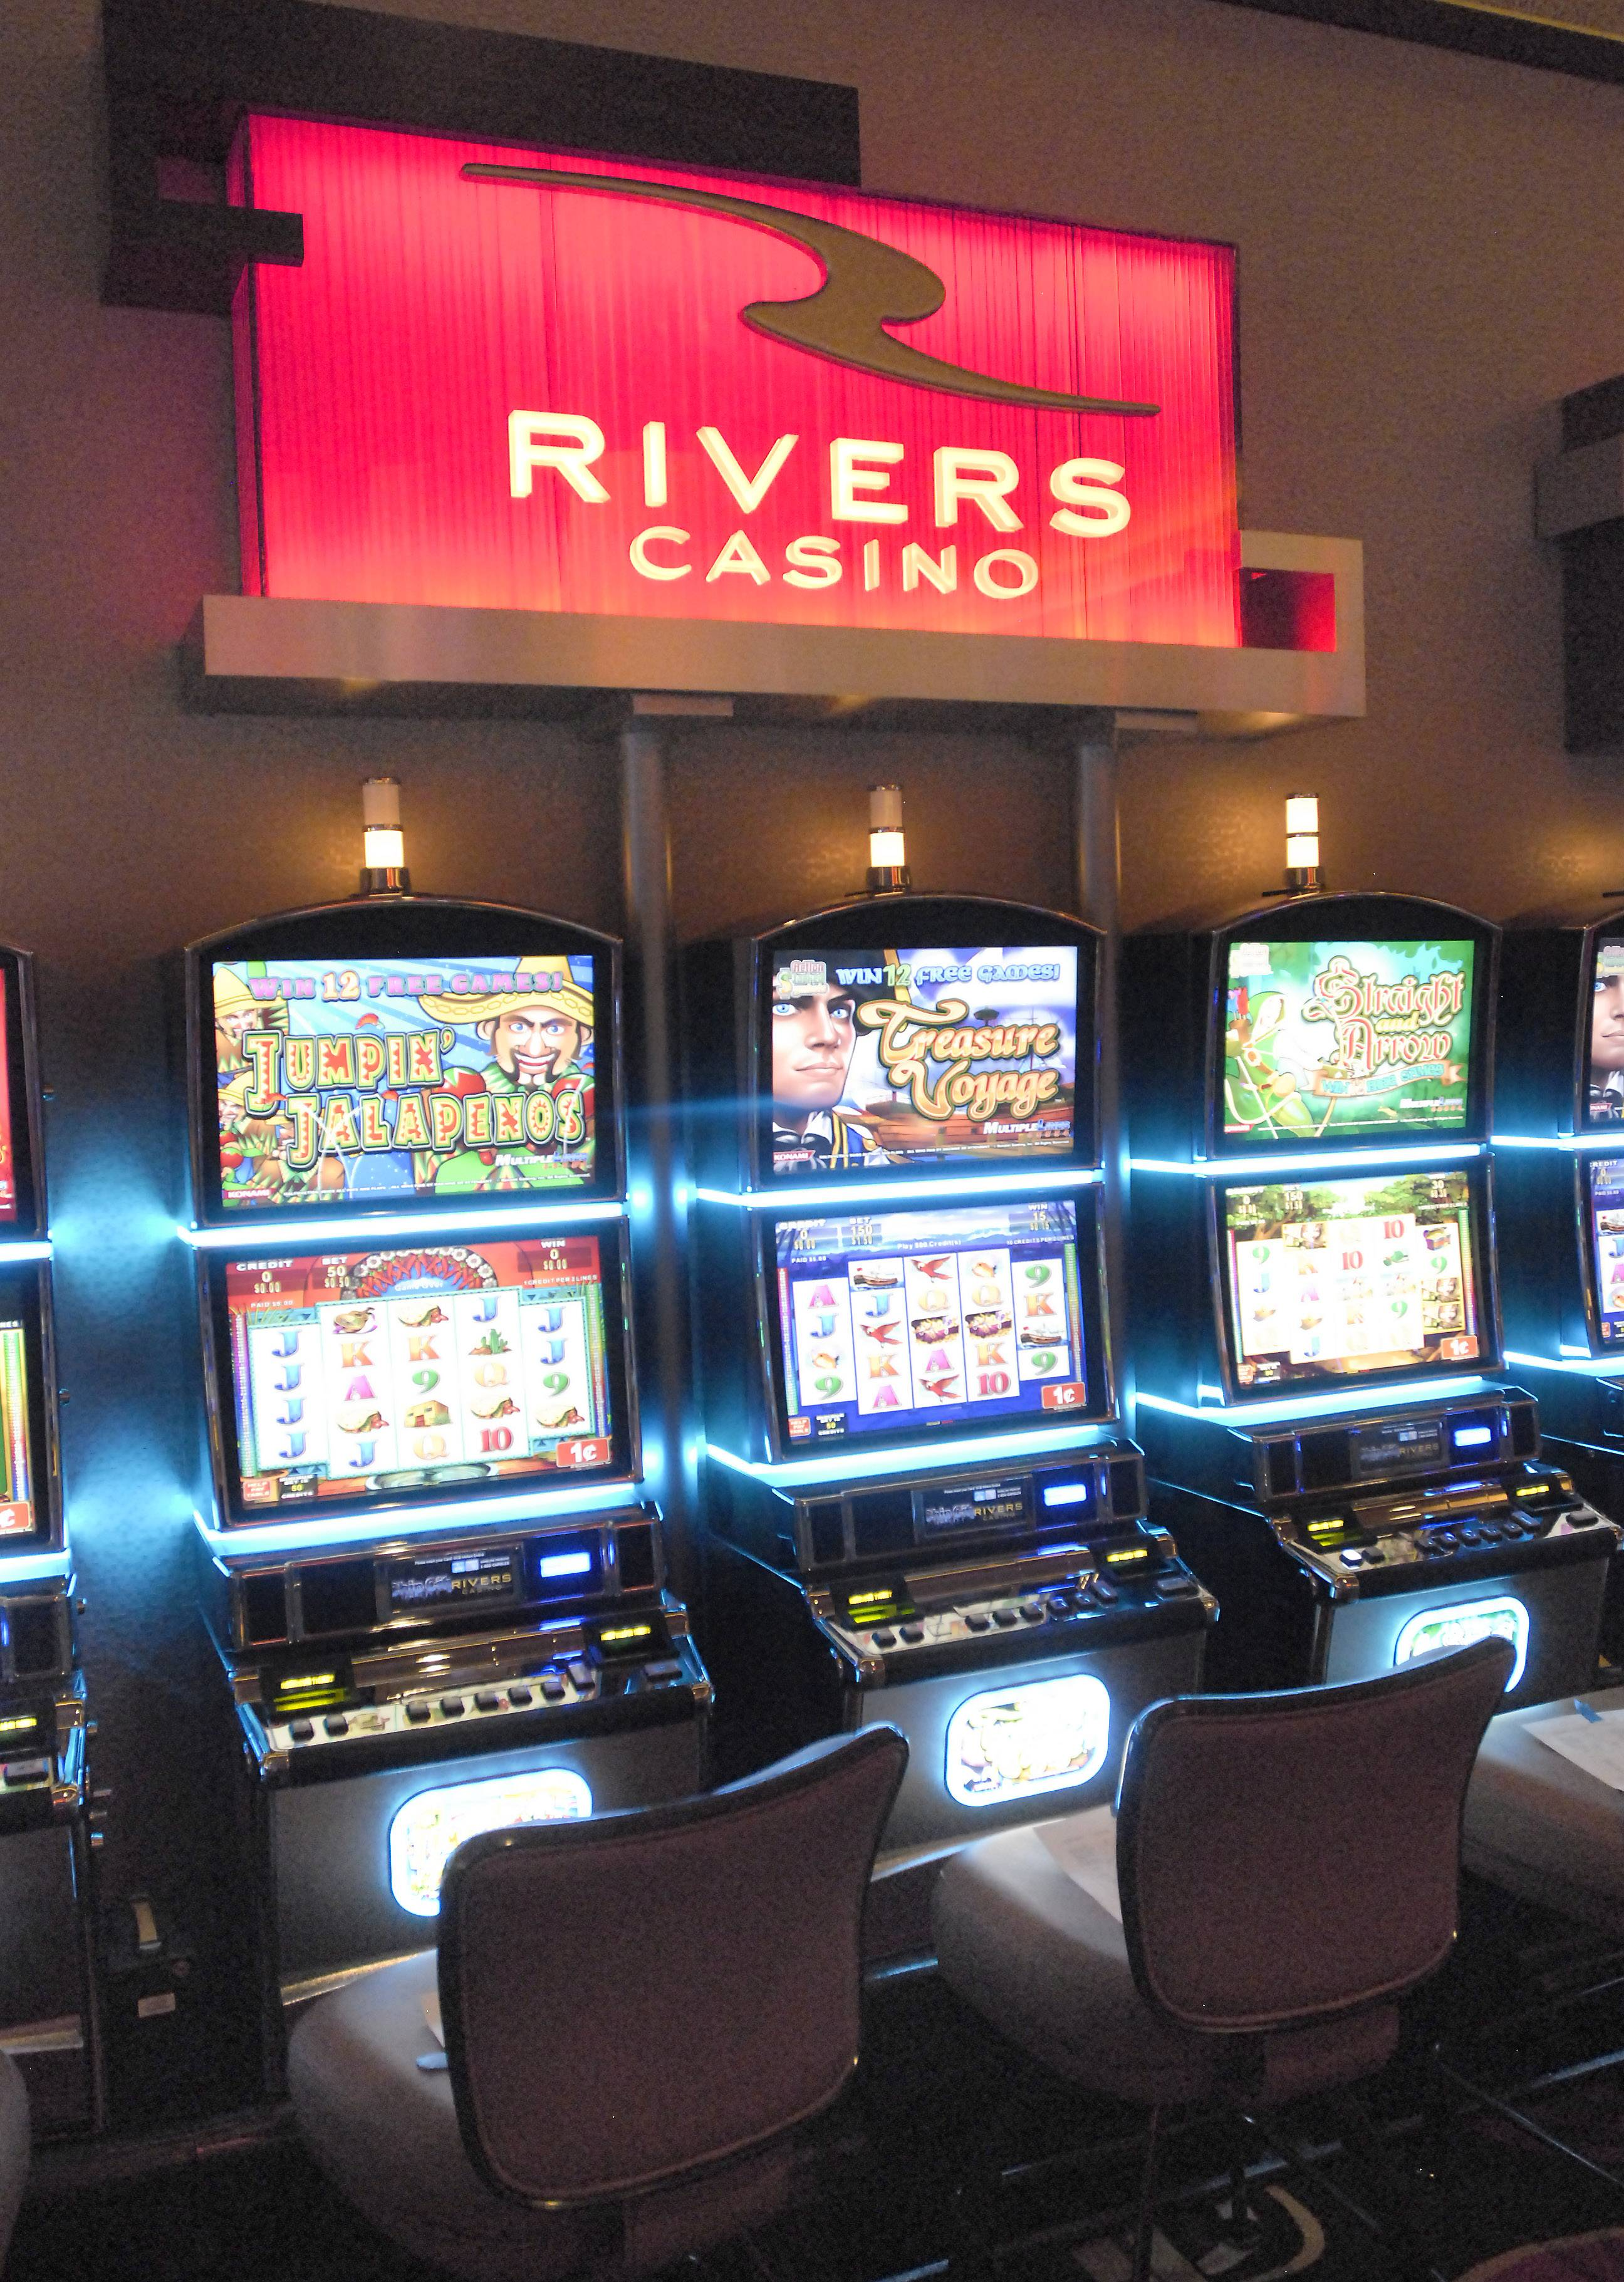 Been to Rivers Casino? Share your experiences!